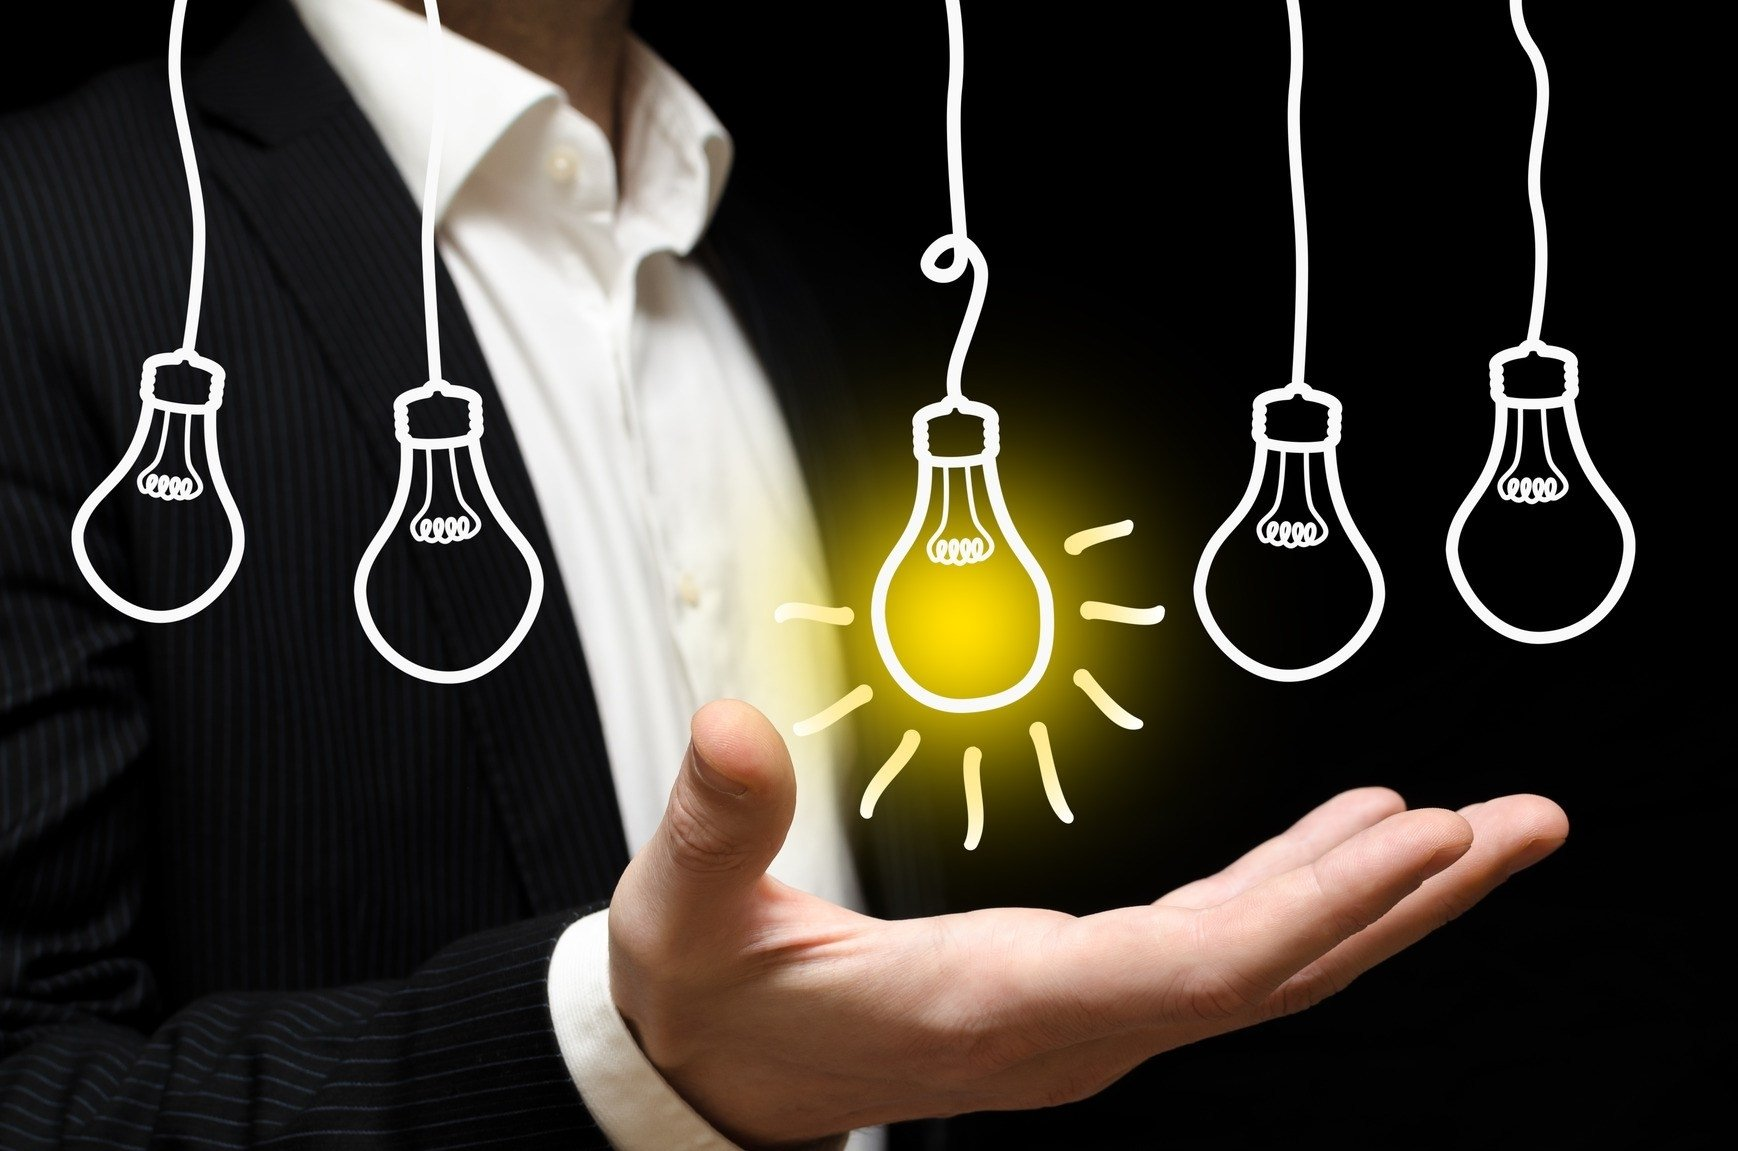 10 Famous How To Pitch A Business Idea how you can pitch your business idea without fail pocketfriendlystudy 2021